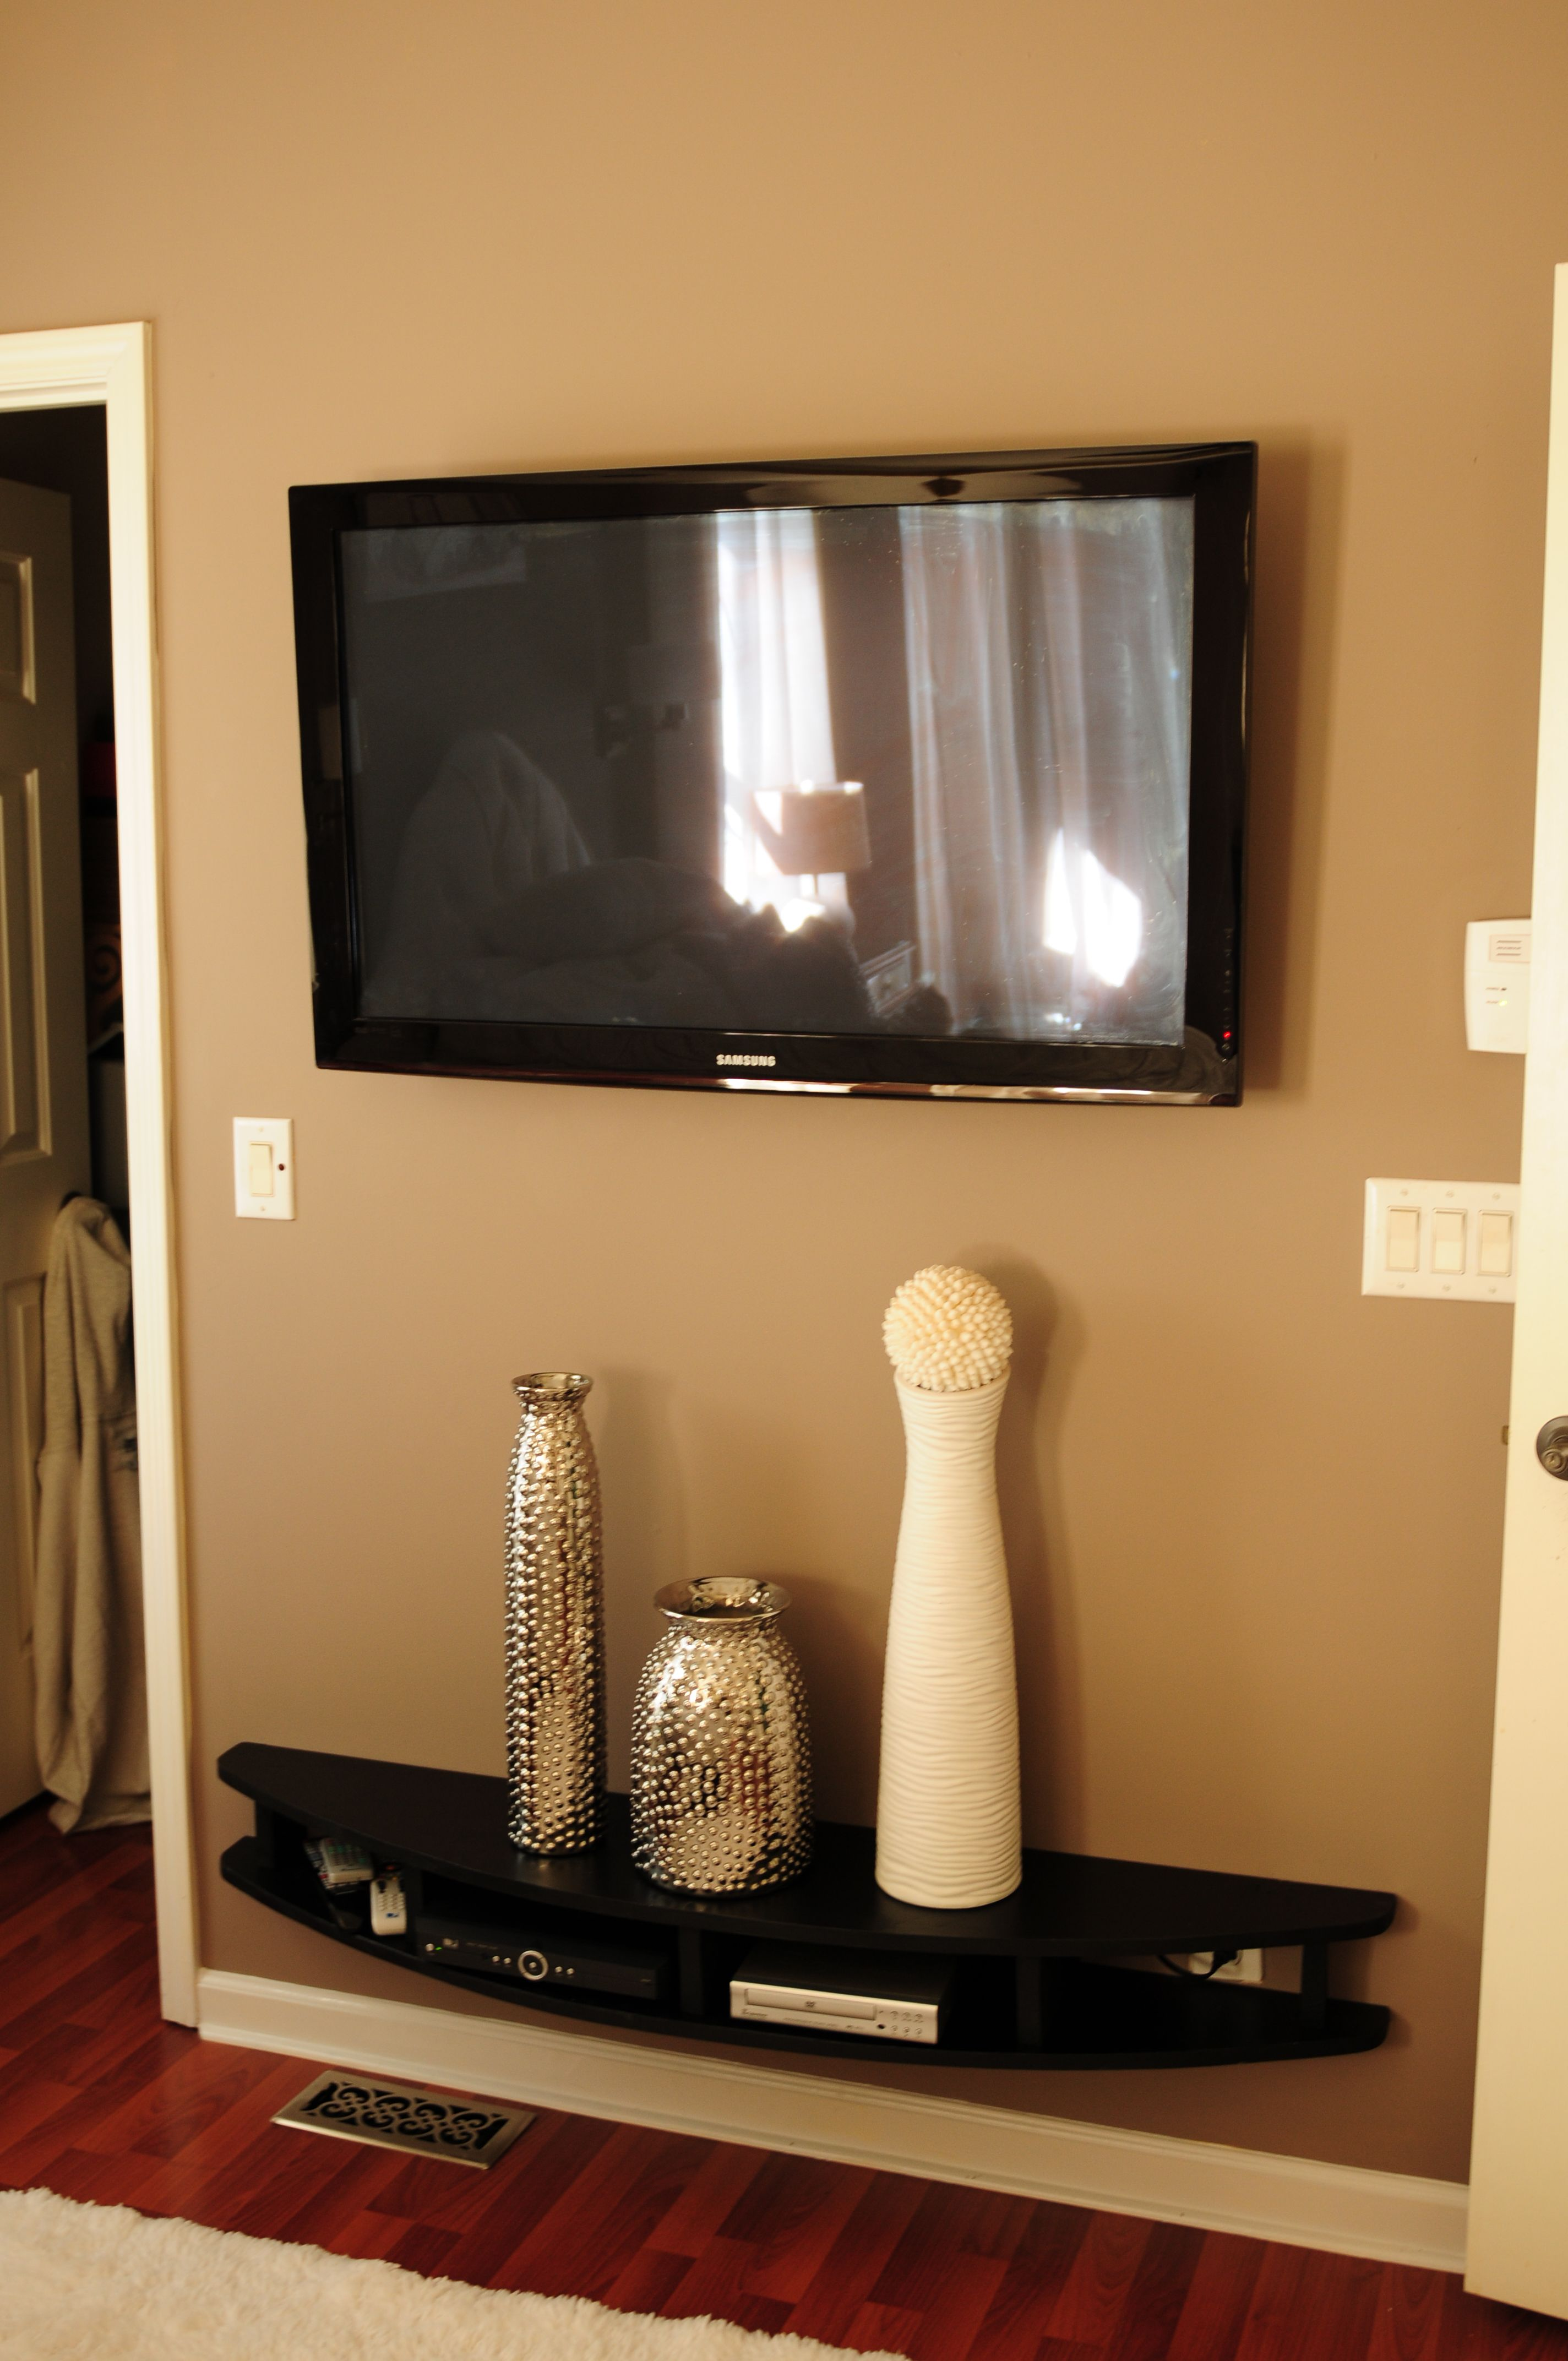 Shelves To Go Under Wall Mounted Tv Hubby Built Modern Shelves To Wall Mount Under Tv He Is